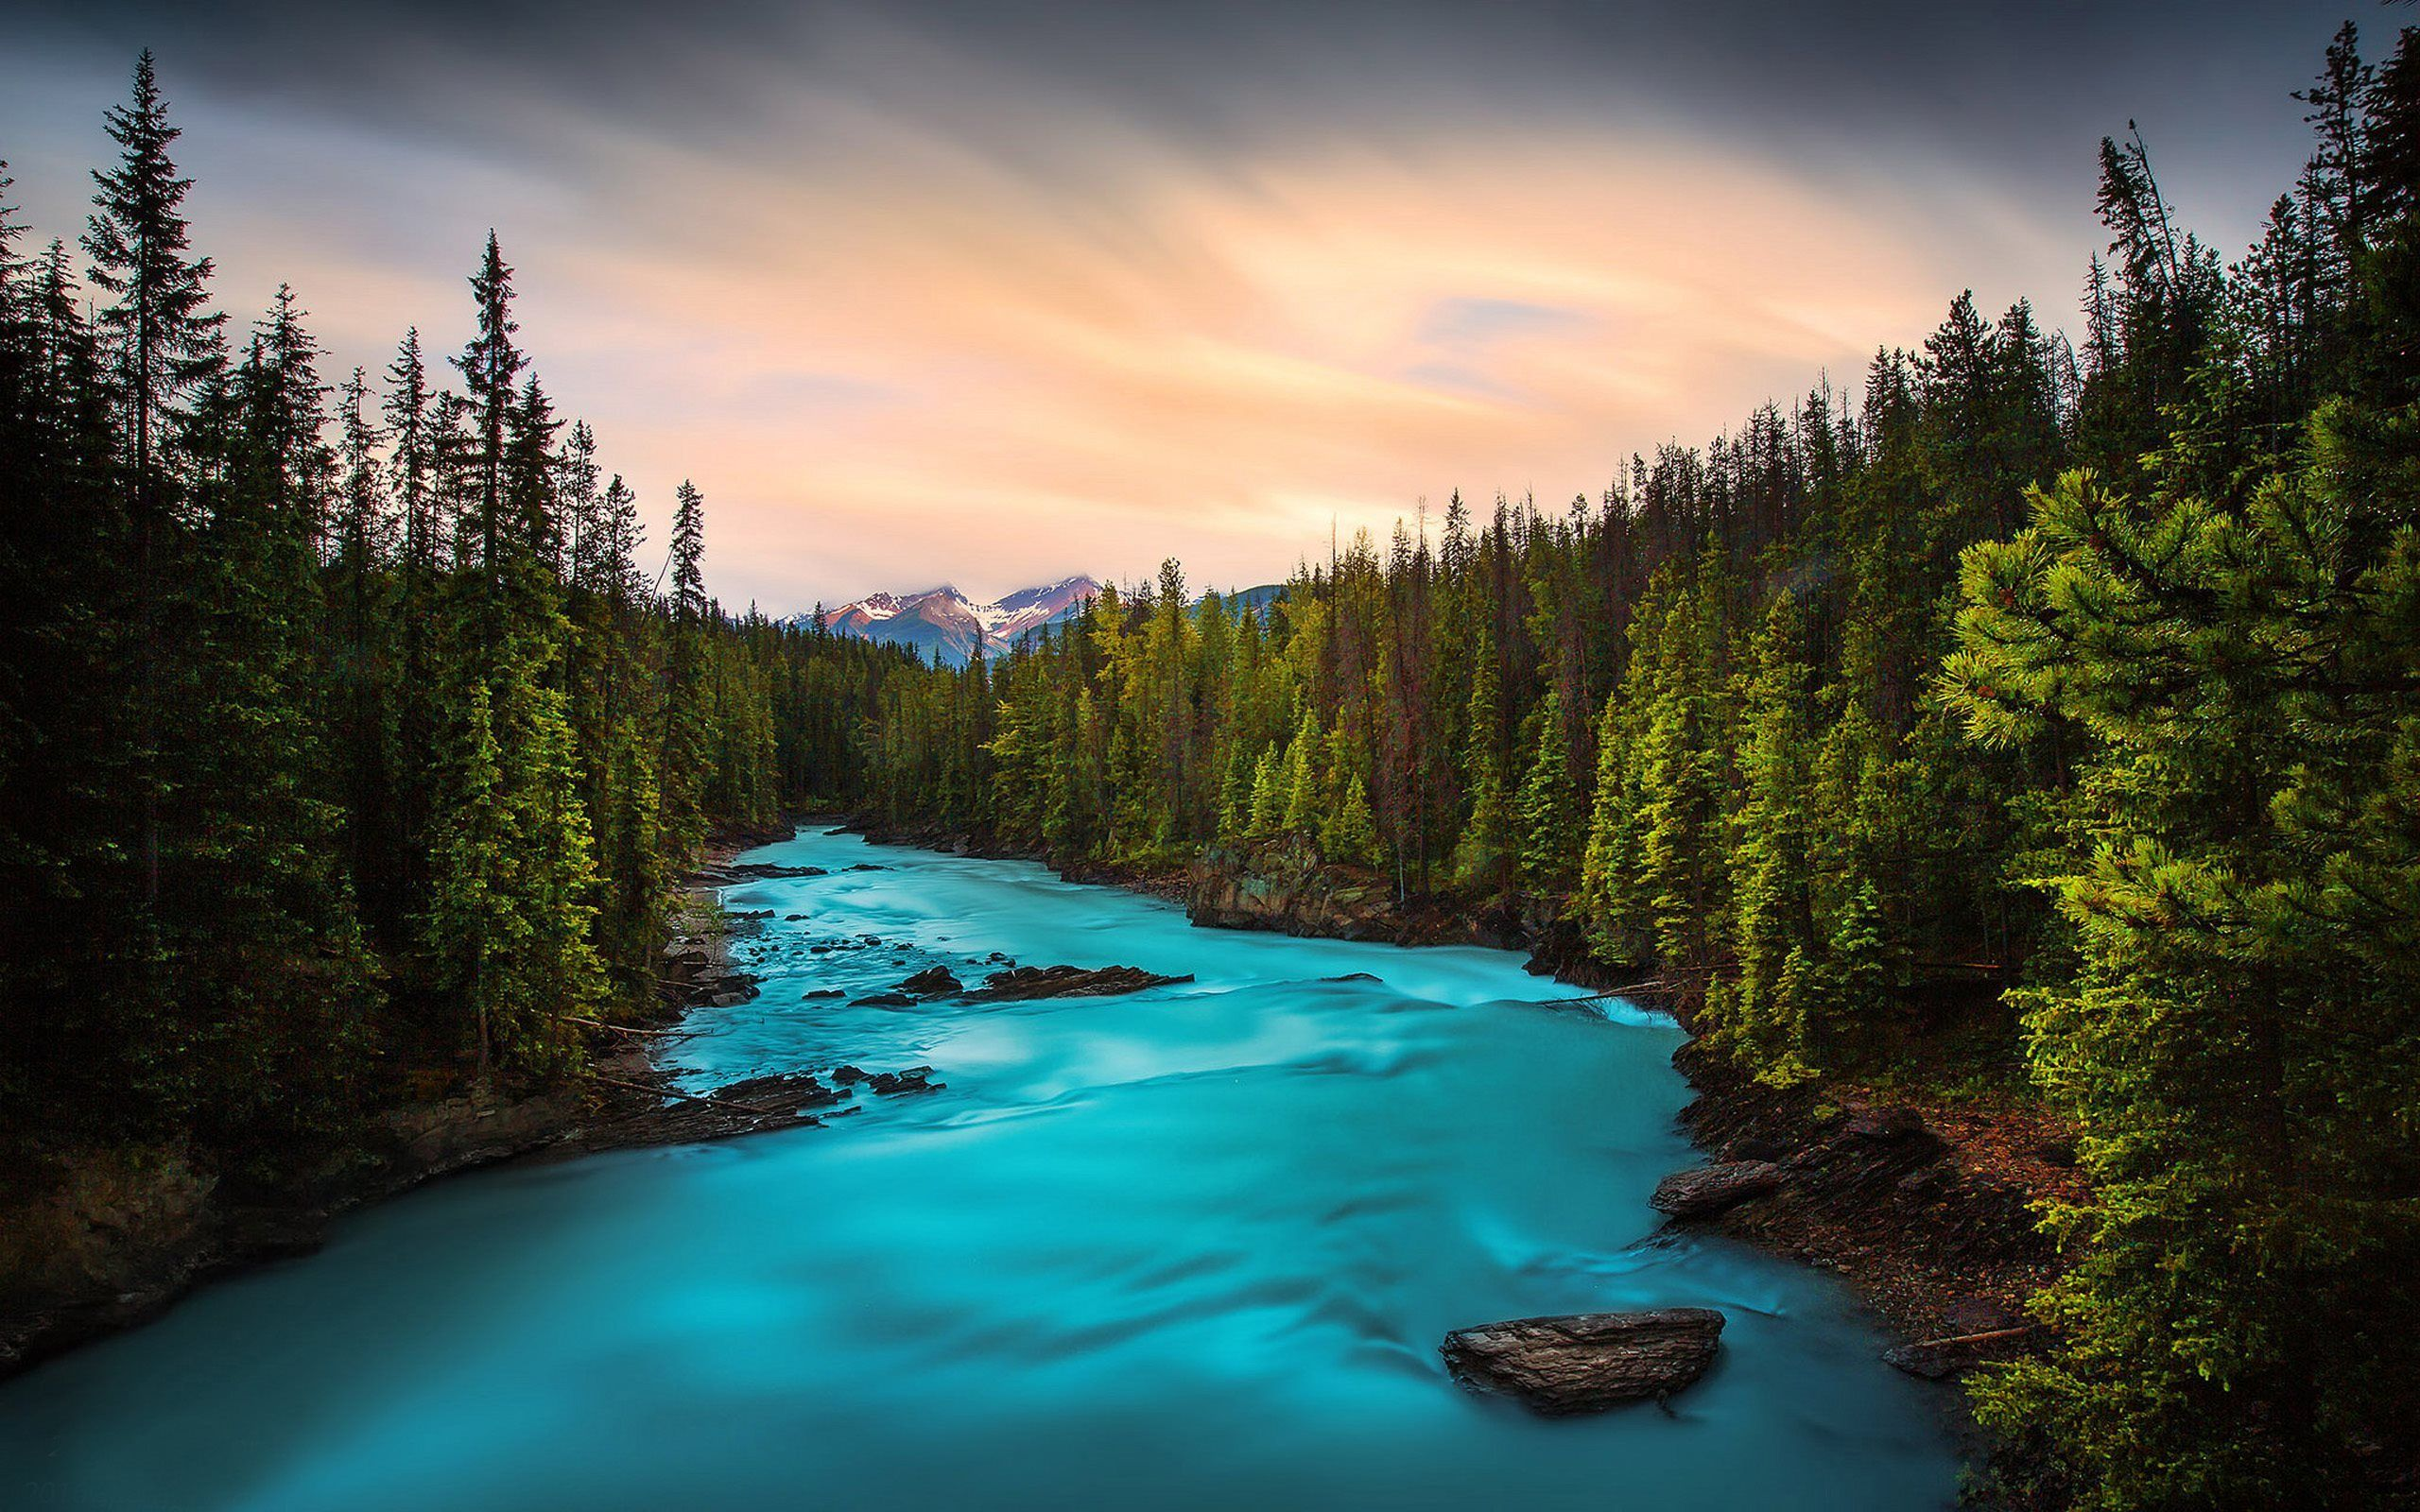 Forest River Mountain River Sunset Yoho National Park British Columbia Canada National Parks Yoho National Park River